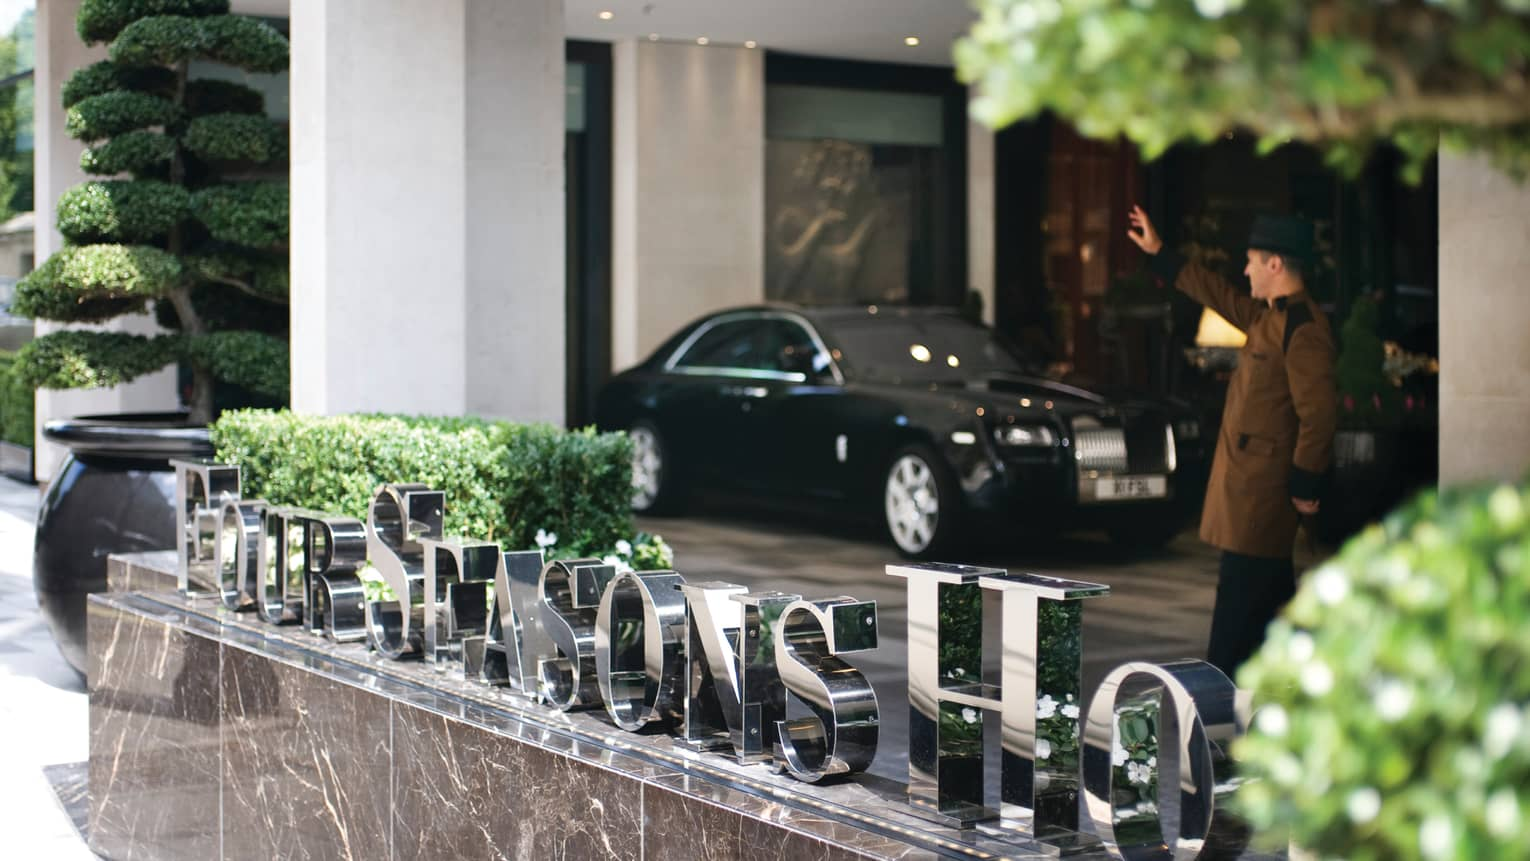 Steel Four Seasons Hotel sign on marble by doorman in uniform, black luxury car